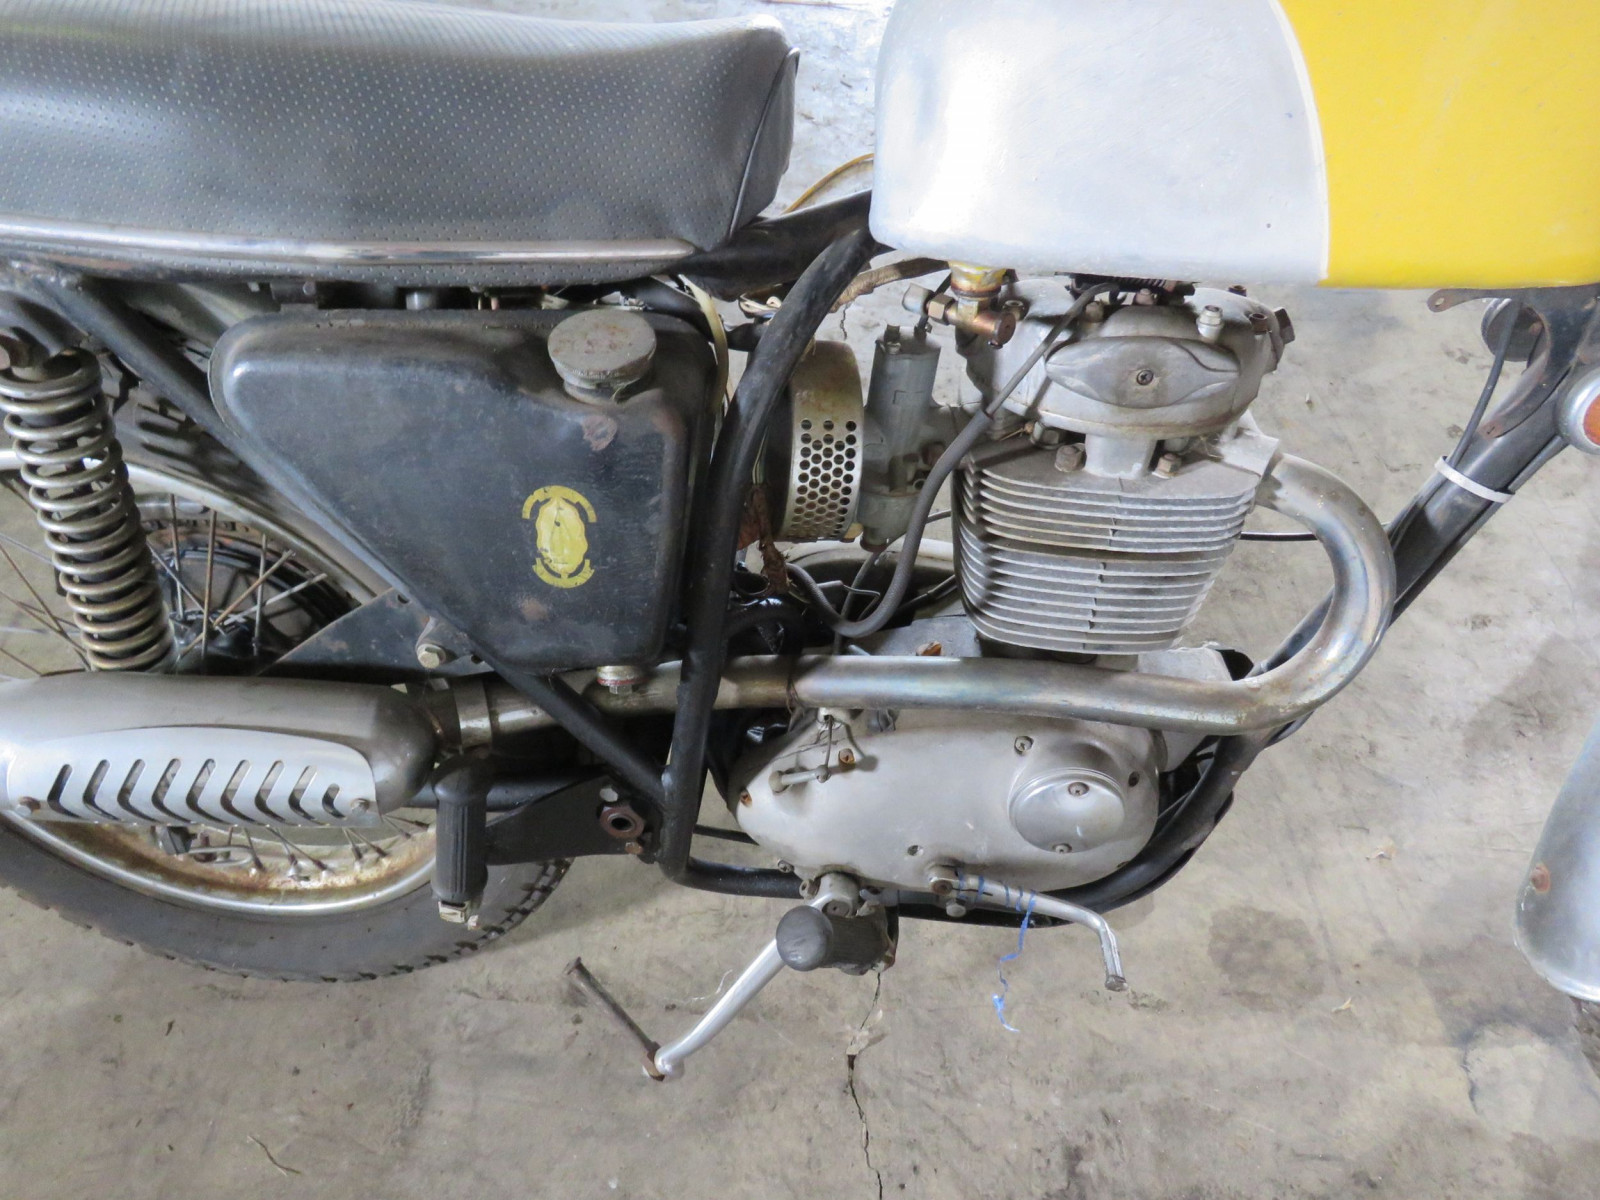 1970 BSA B44 Victor Special Motorcycle - Image 6